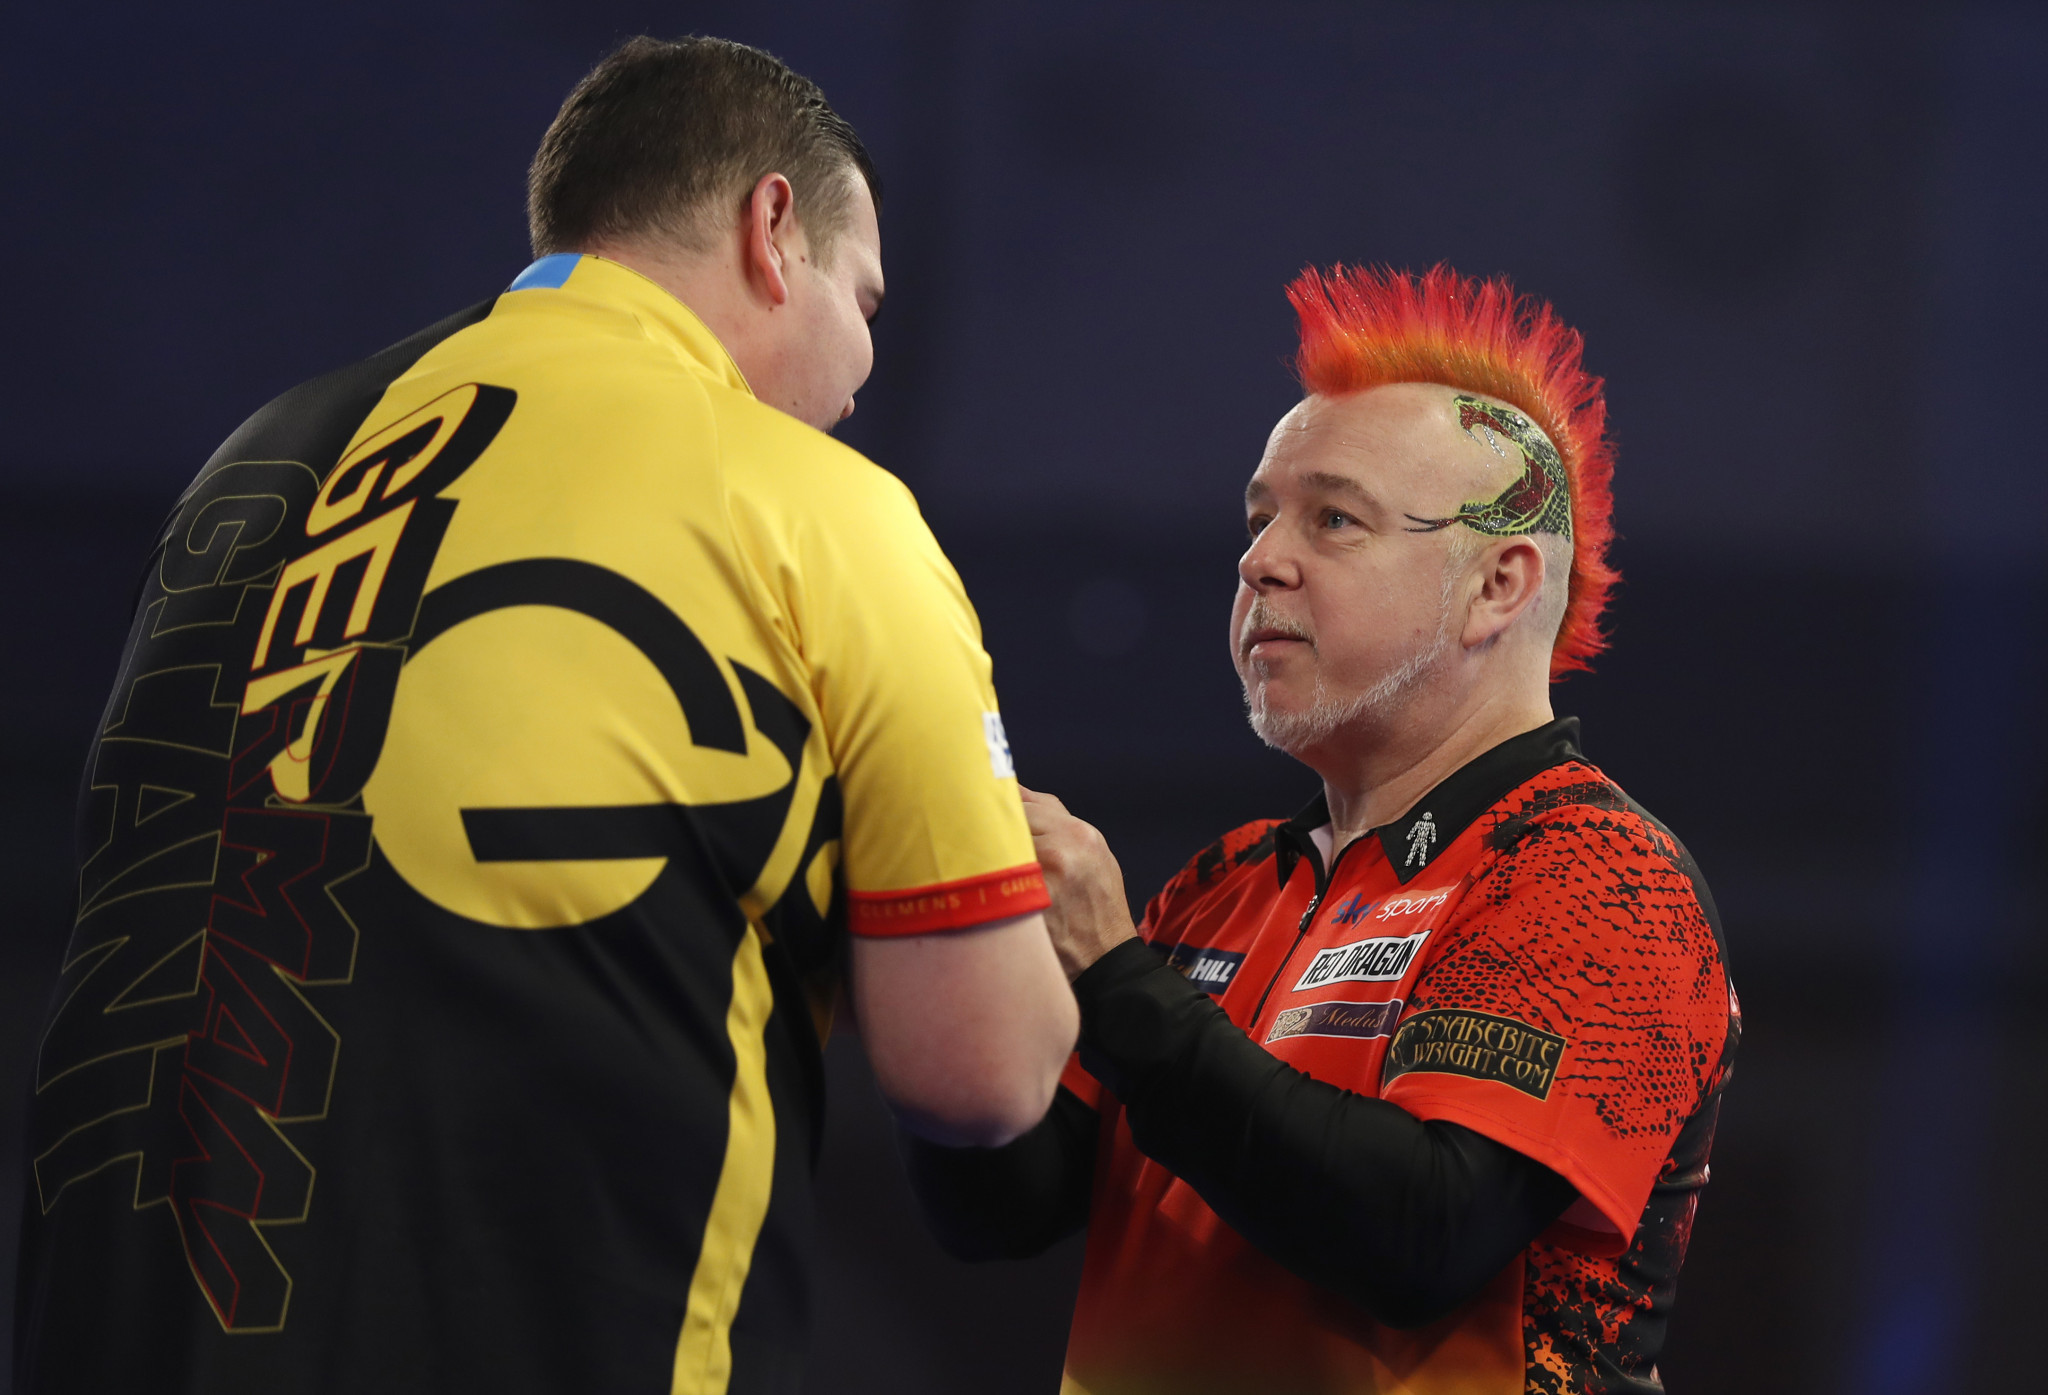 Clemens knocks defending champion Wright out of World Darts Championship